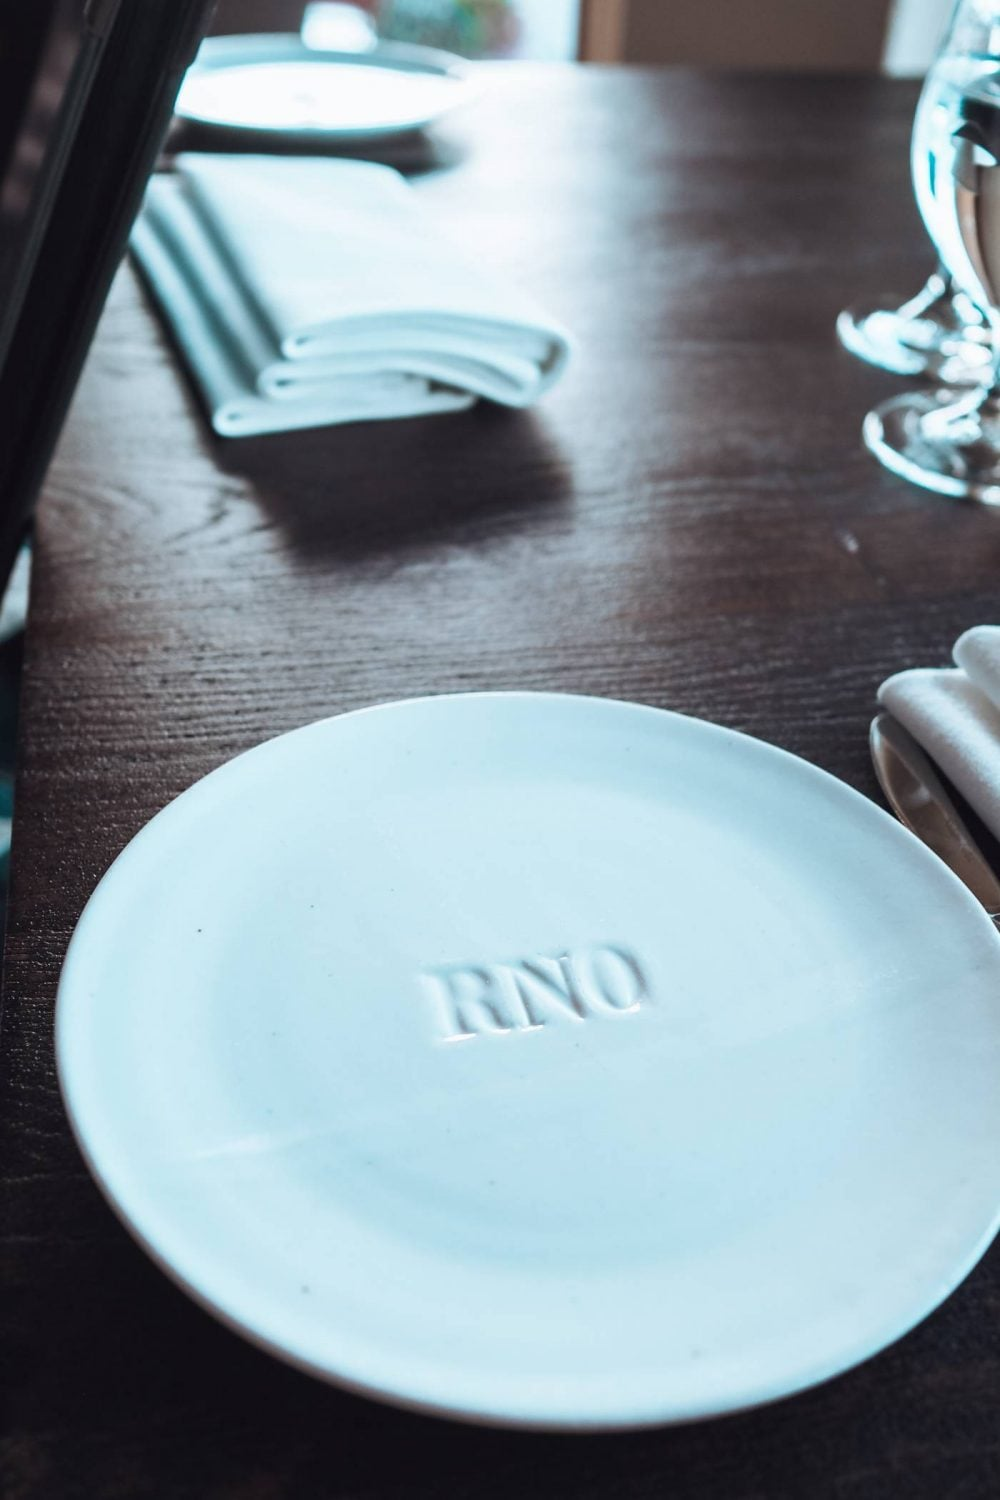 White plate with 'RNO' engraved